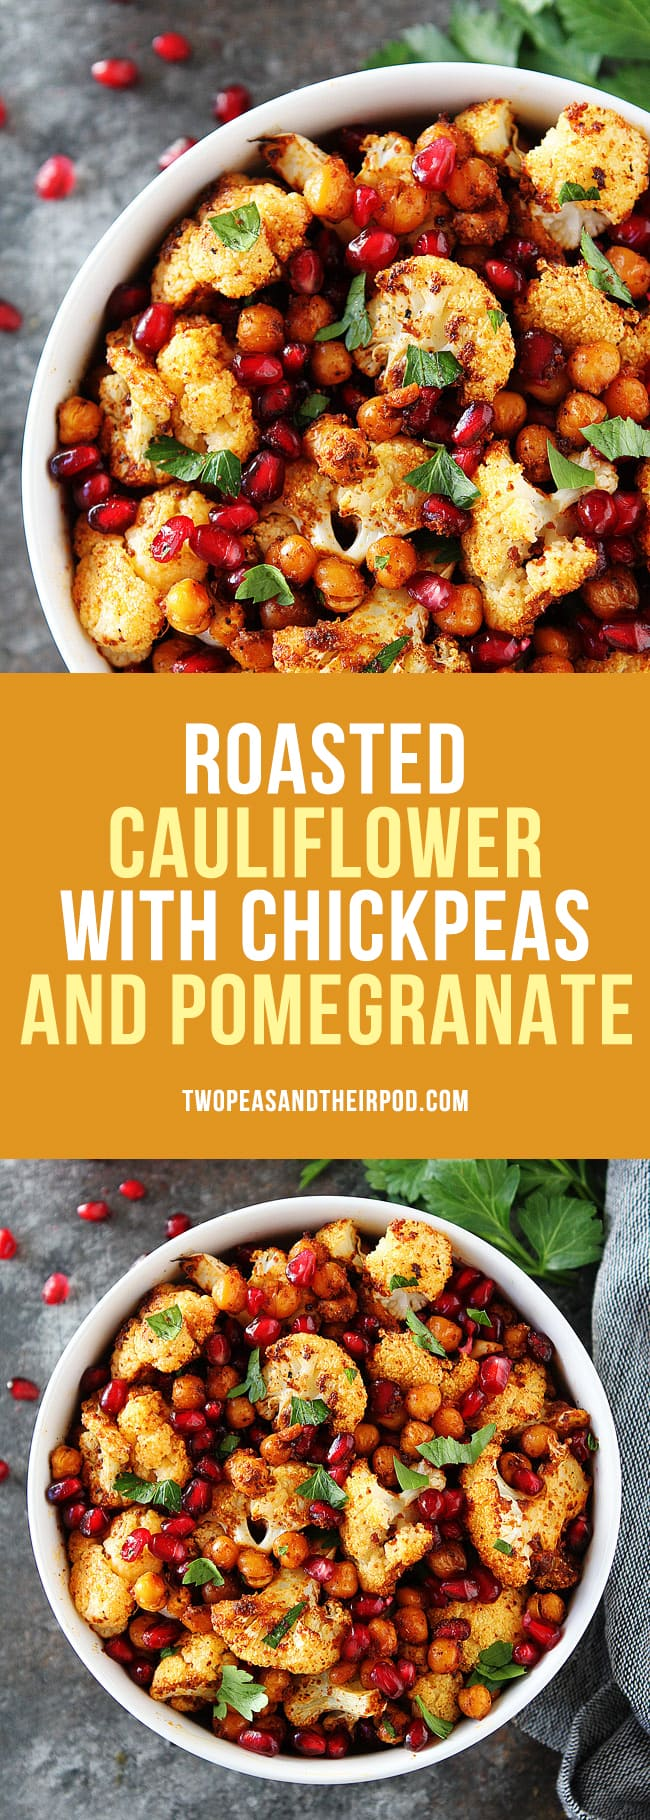 Roasted Cauliflower with Chickpeasand Pomegranate is a delicious and healthy side dish that goes great with any meal! #vegan #glutenfree #cauliflower #chickpeas